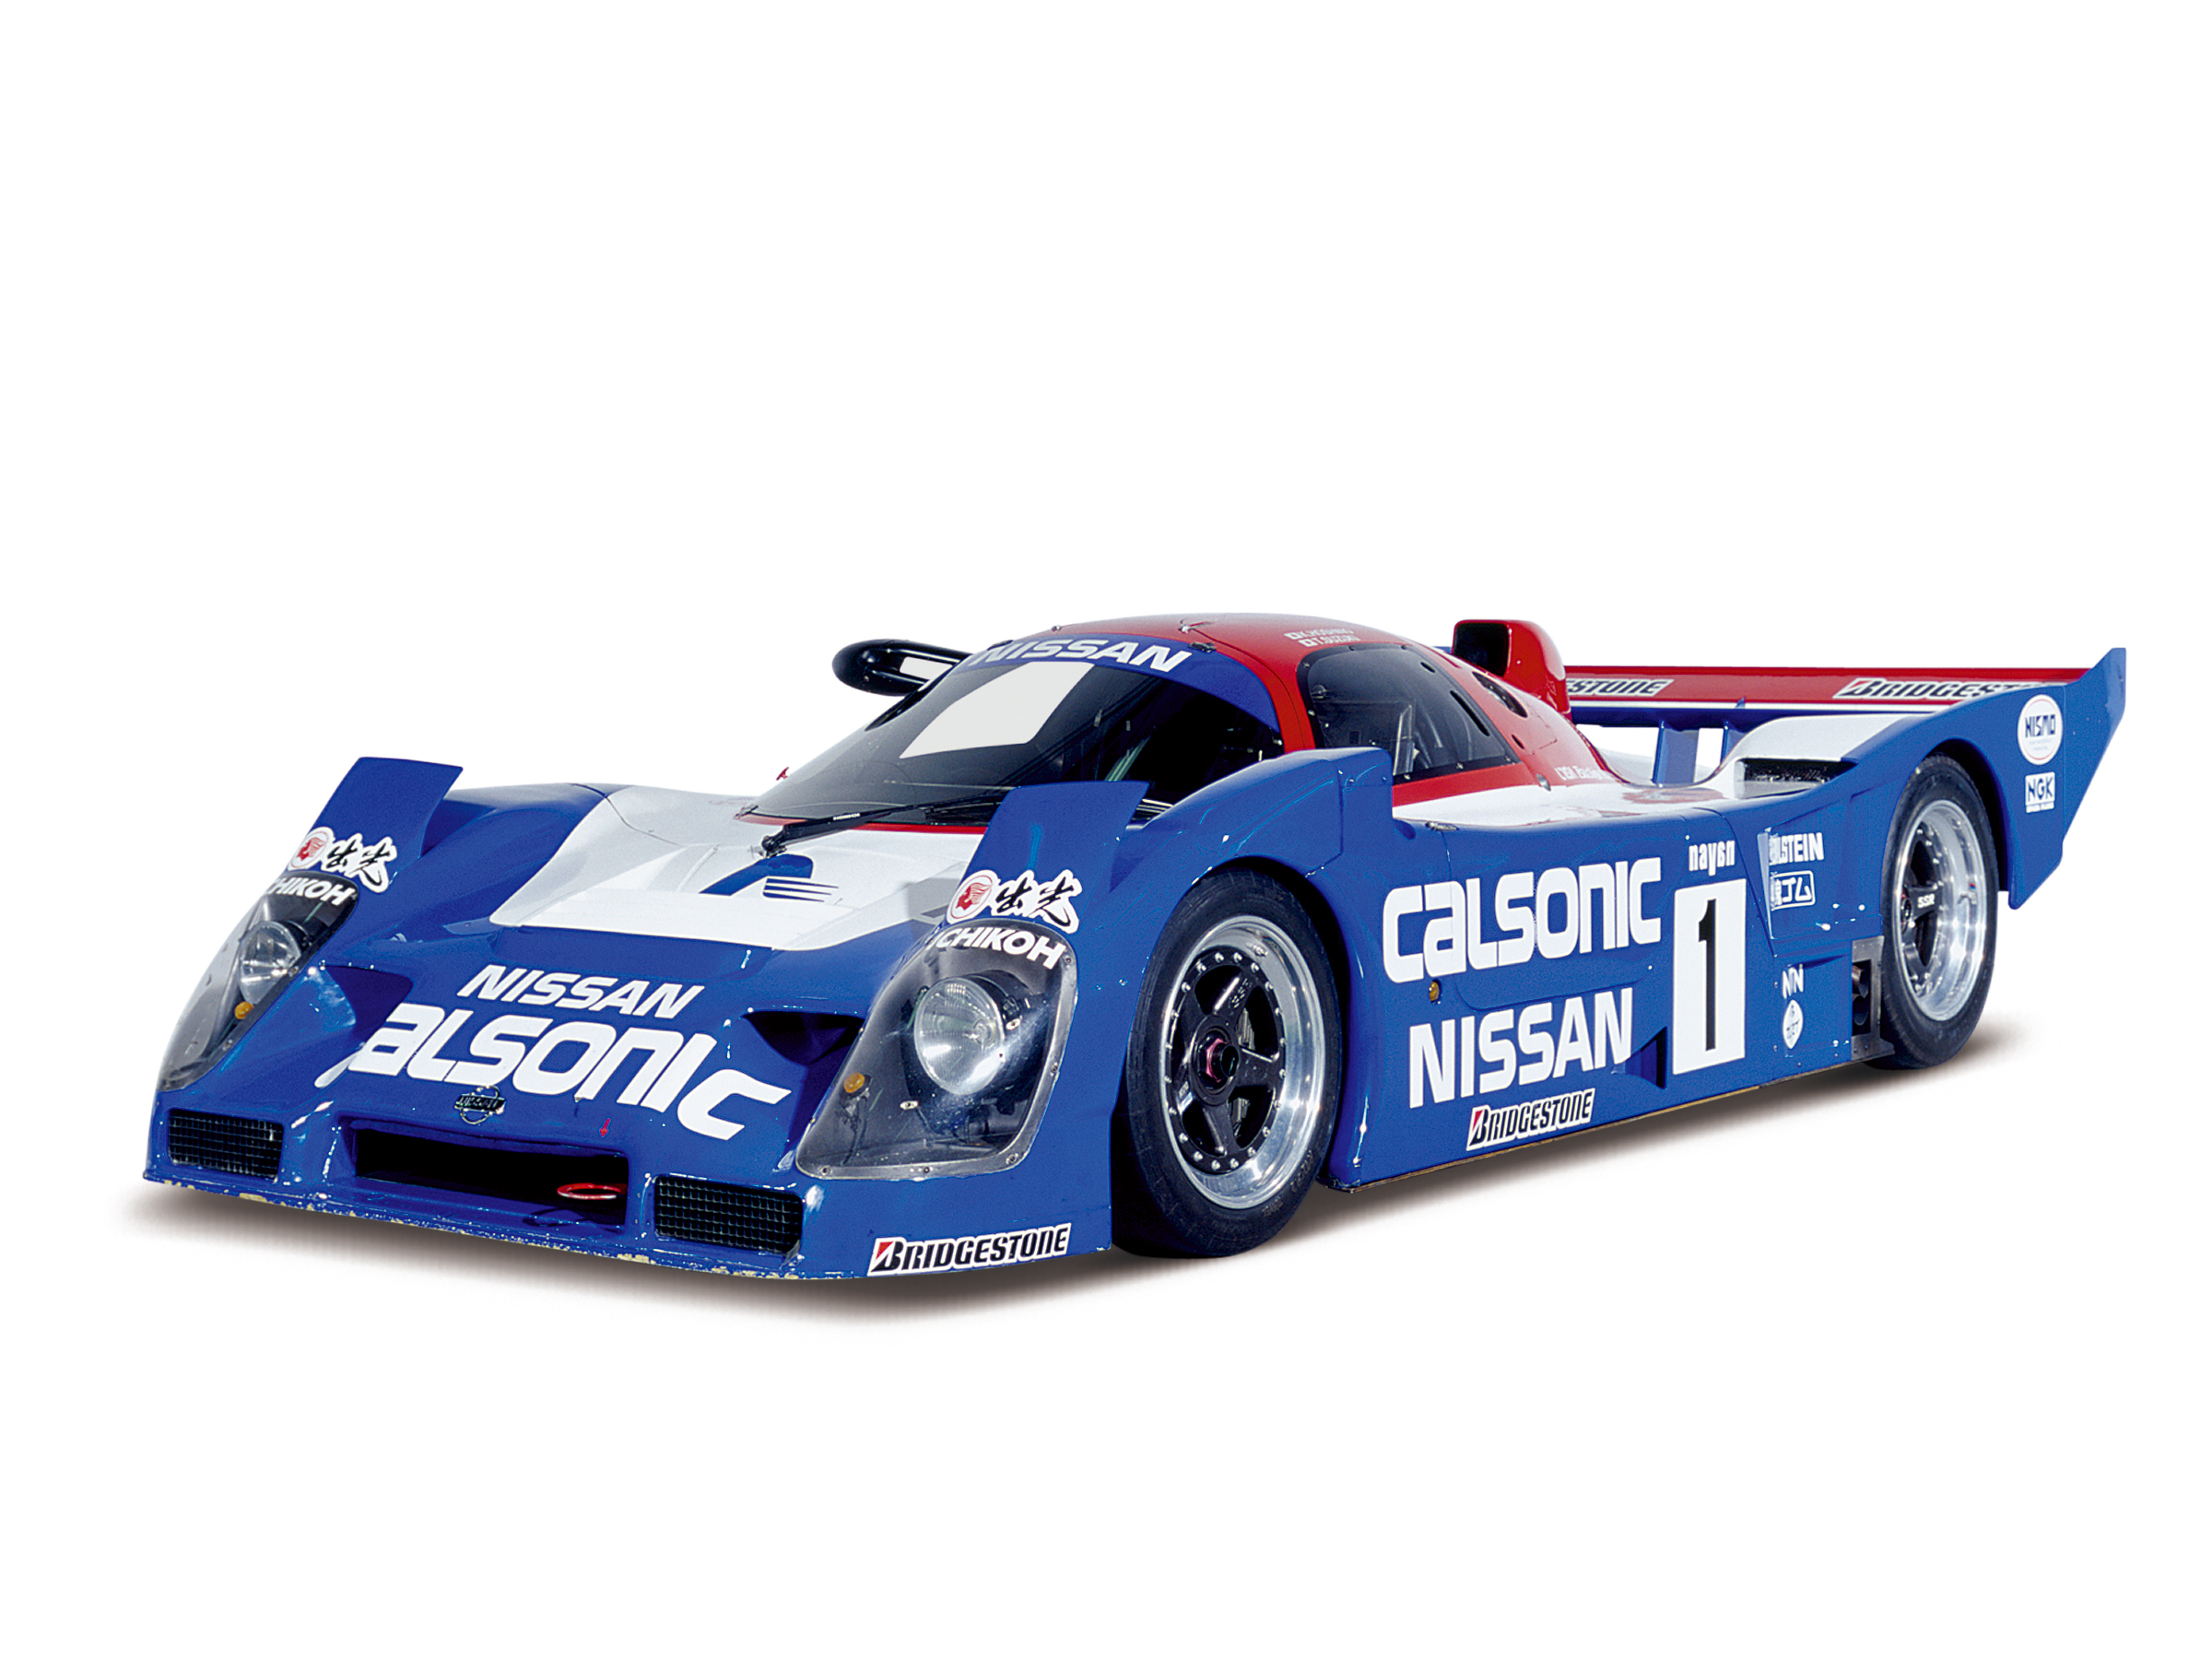 NISSAN HERITAGE COLLECTION online